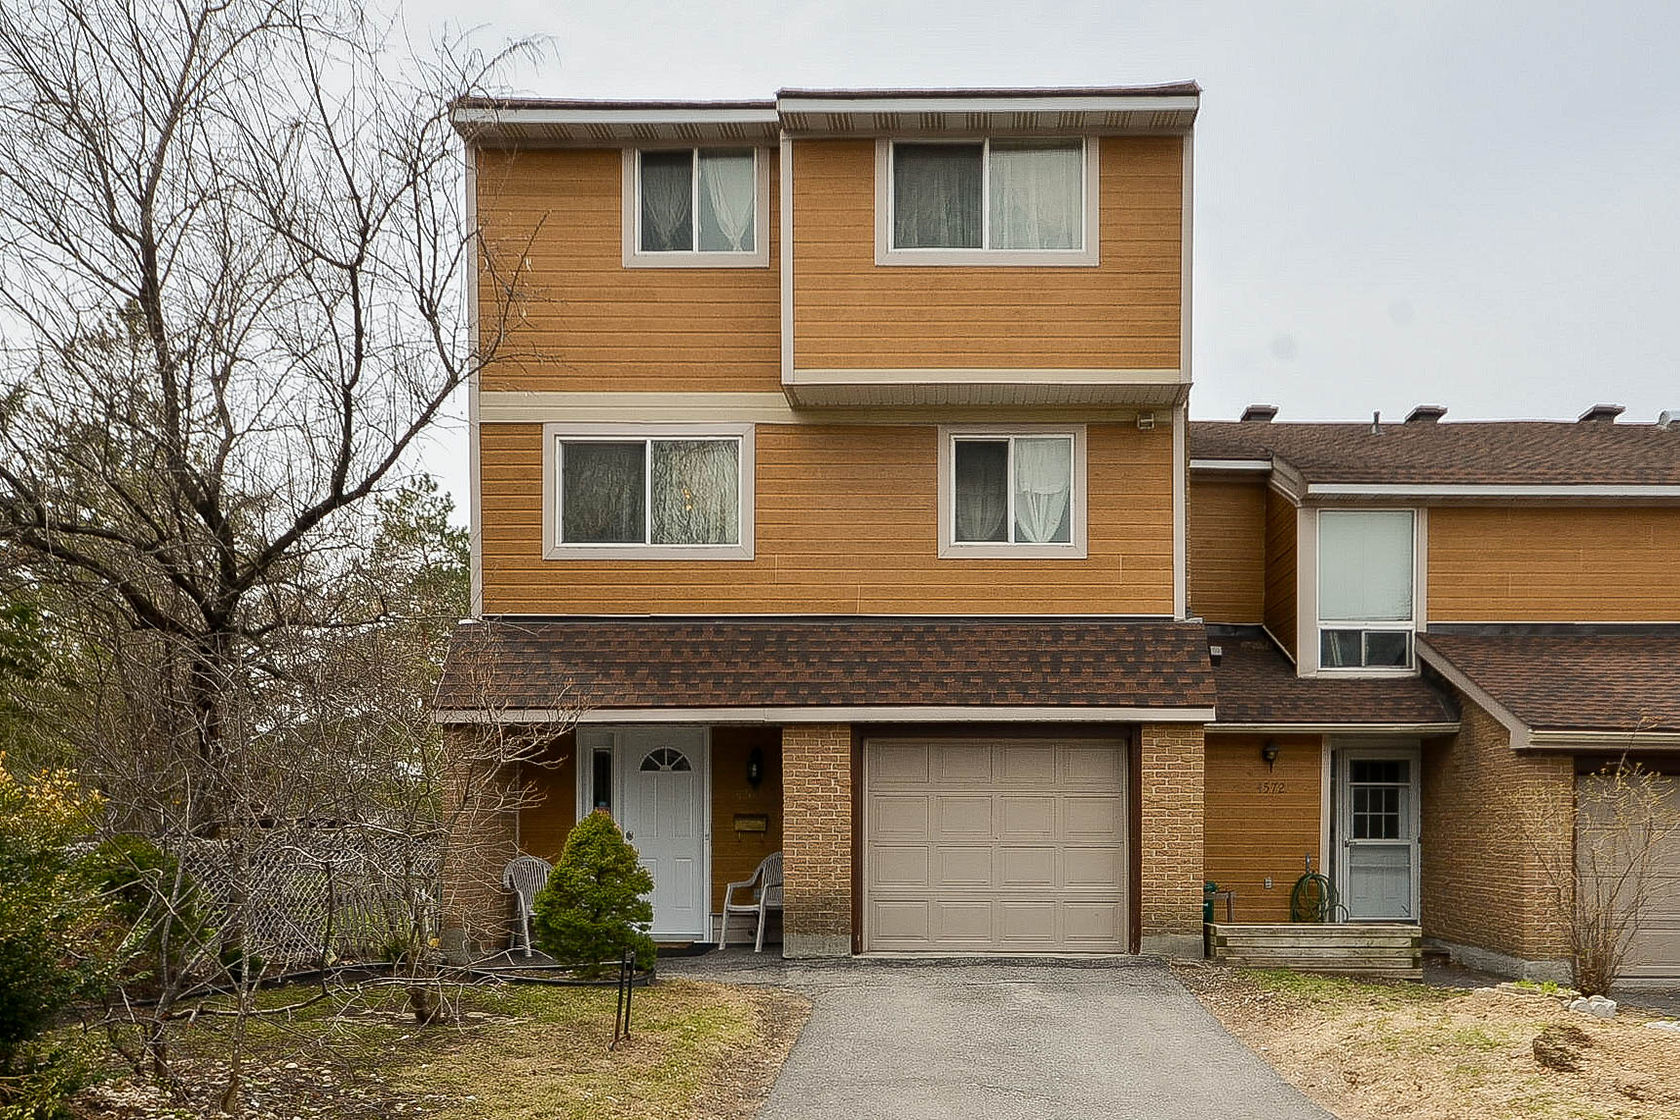 4574 Carrington Place - 3 Storey End Unit, 4 Bedroom Condo Townhouse in Pineview area!